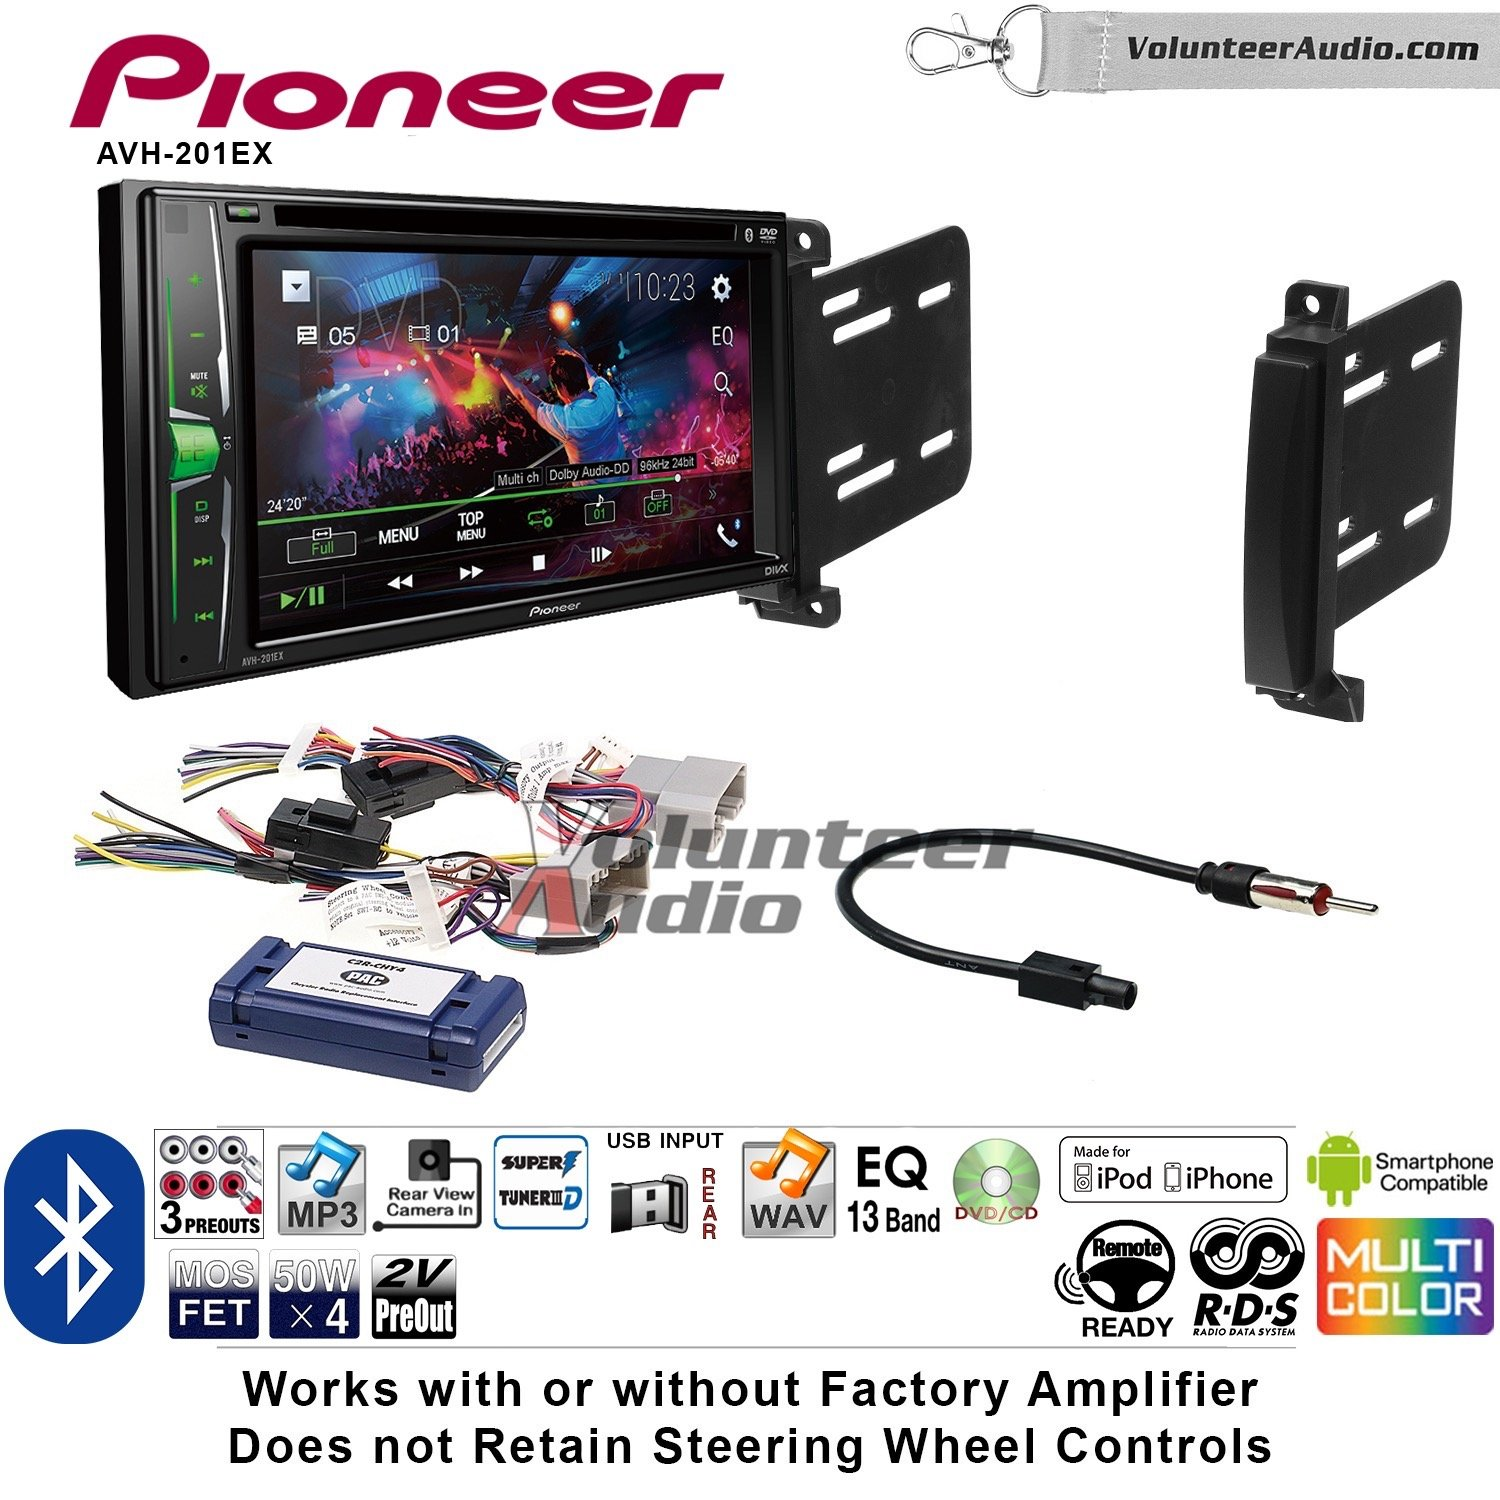 Pioneer AVH-201EX Double Din Radio Install Kit with CD Player Bluetooth USB/AUX Fits 2011-2013 Dodge Durango, Jeep Grand Cherokee by Volunteer Audio (Image #1)